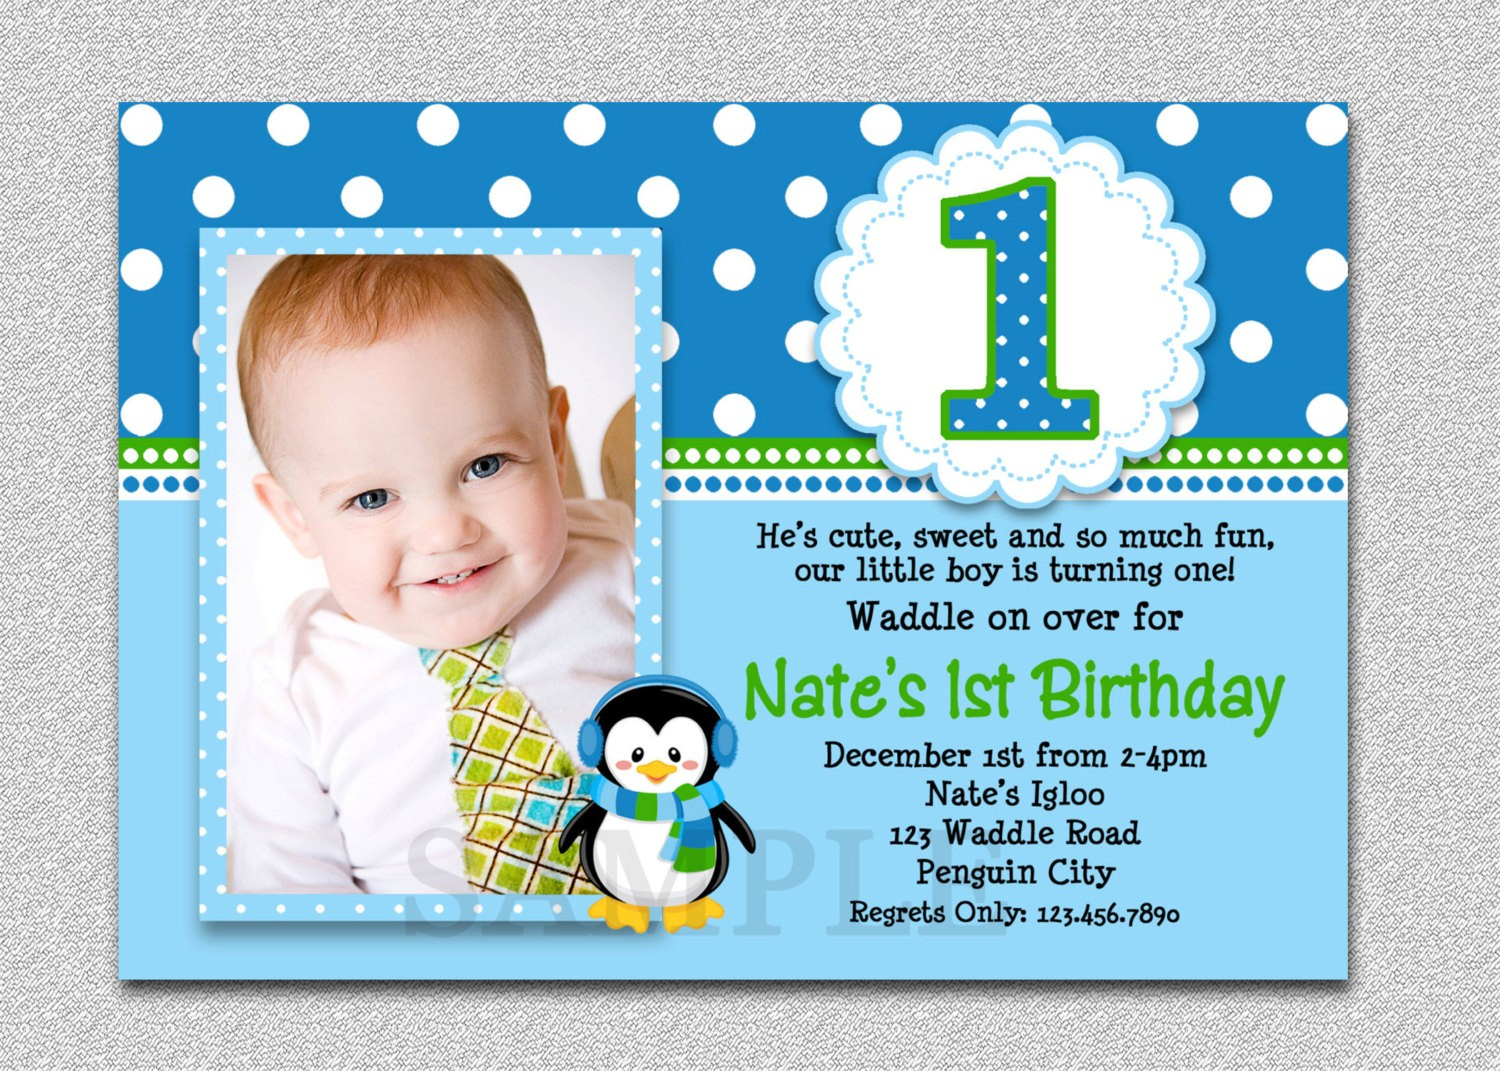 invitation card design for 1st birthday party ; invitation-card-1st-birthday-girl-best-of-birthday-invites-new-1st-birthday-party-invitations-design-ideas